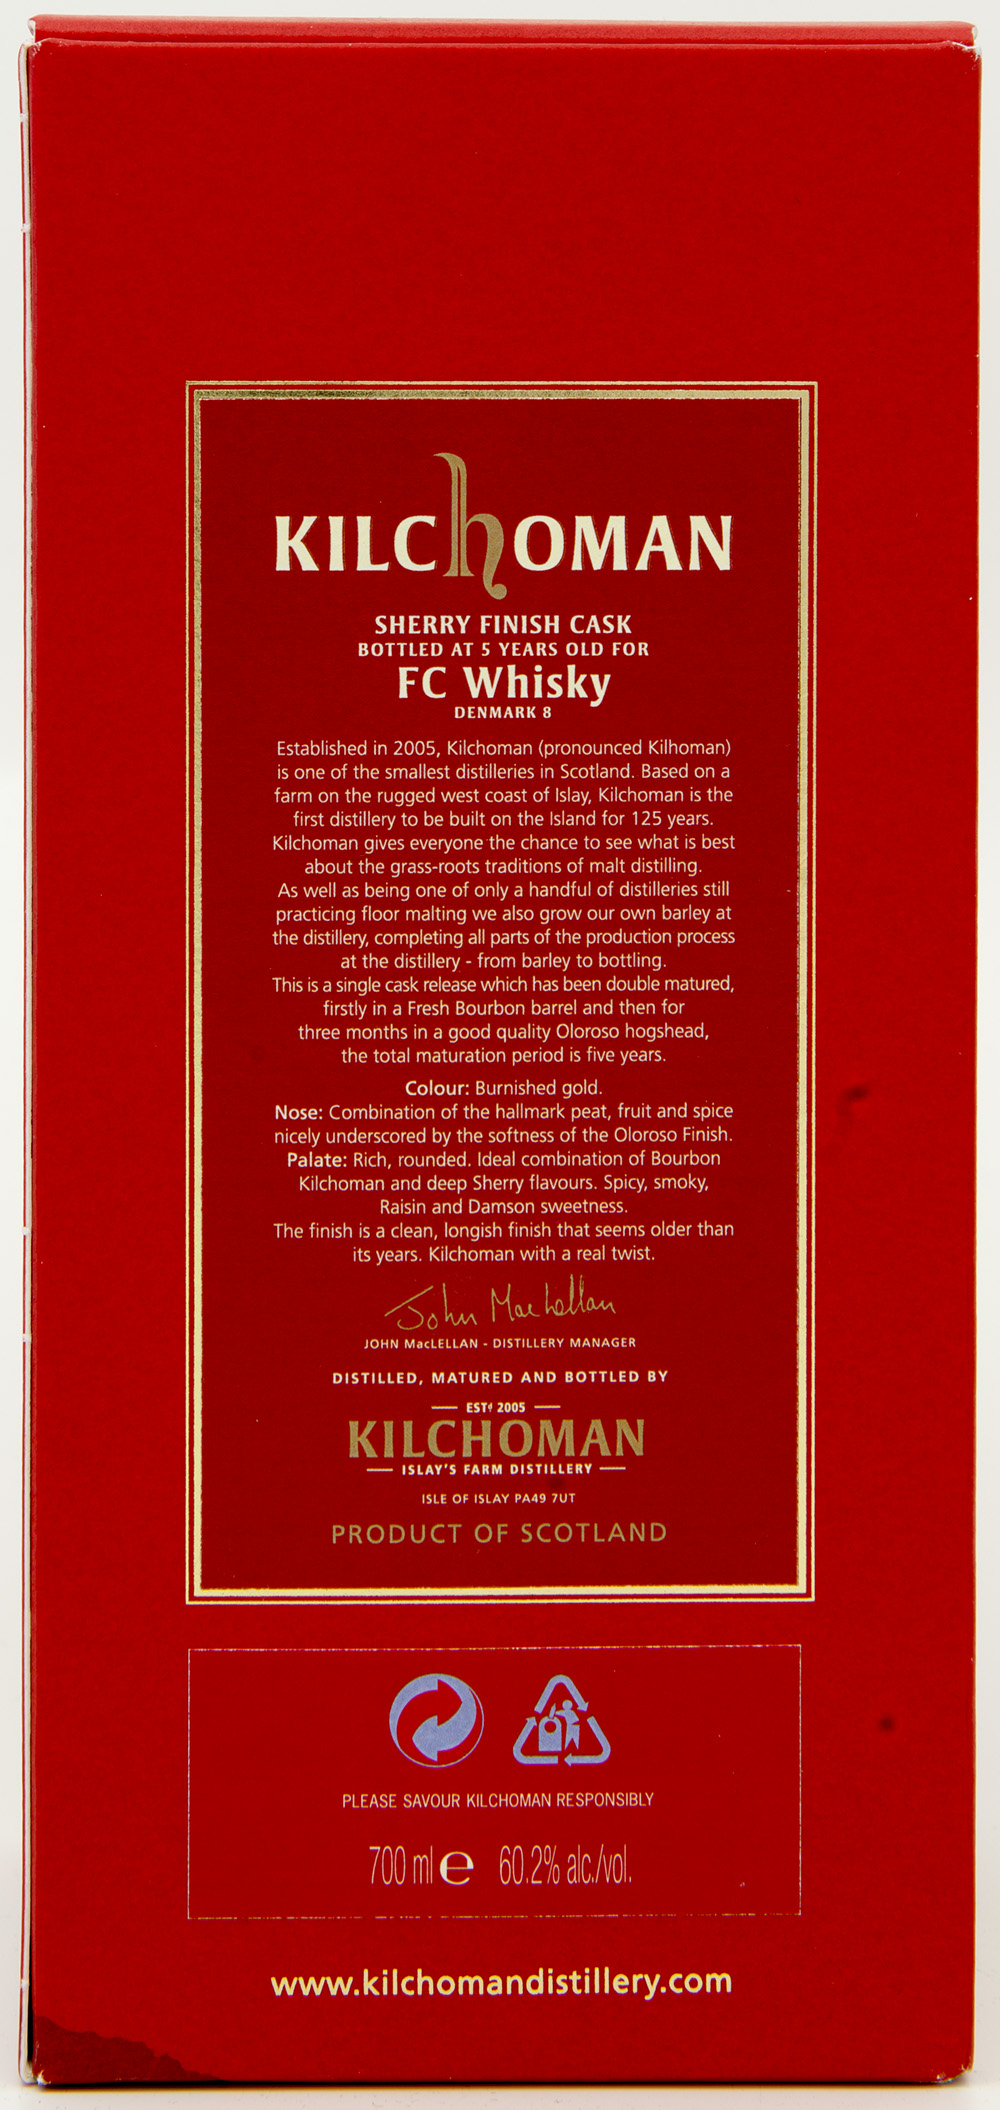 Billede: DSC_8203 - Kilchoman Denmark Single Cask Relase 460-2006 - box back.jpg